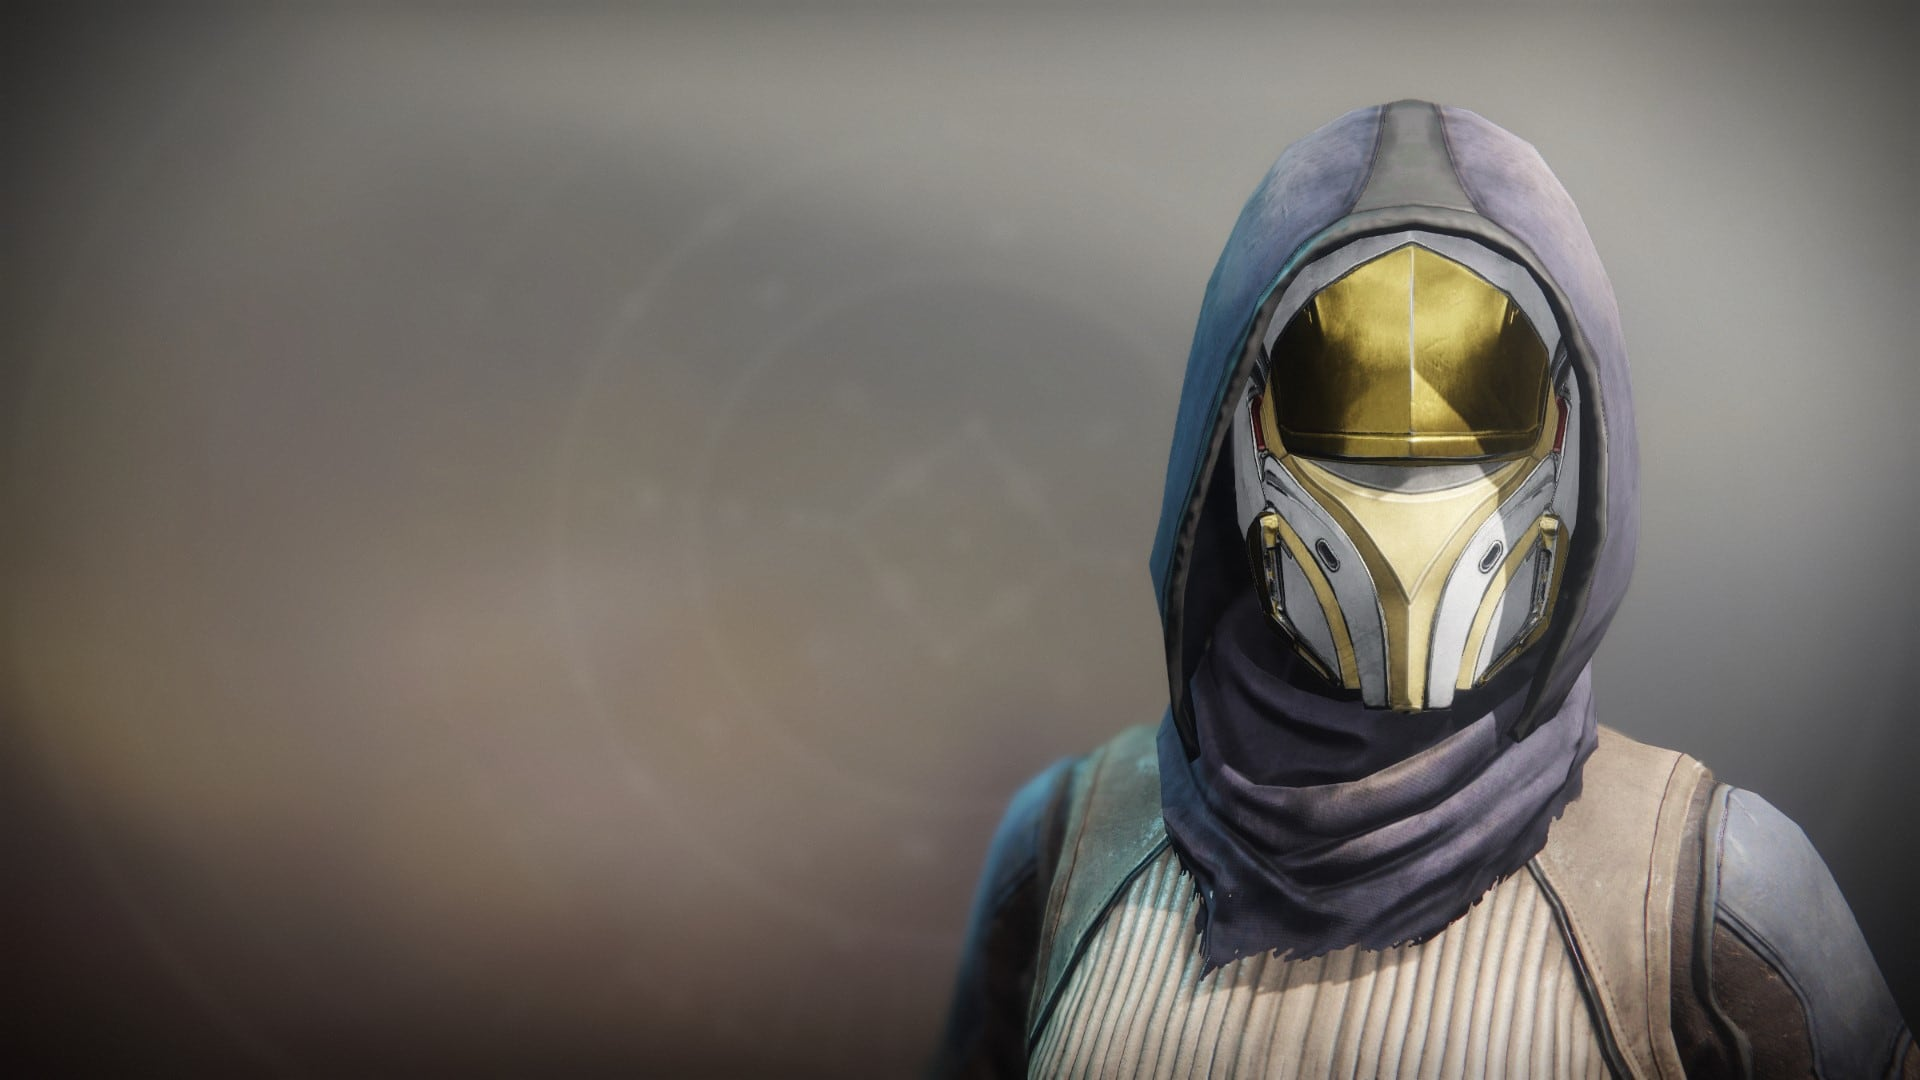 An in-game render of the Solstice Mask (Majestic).